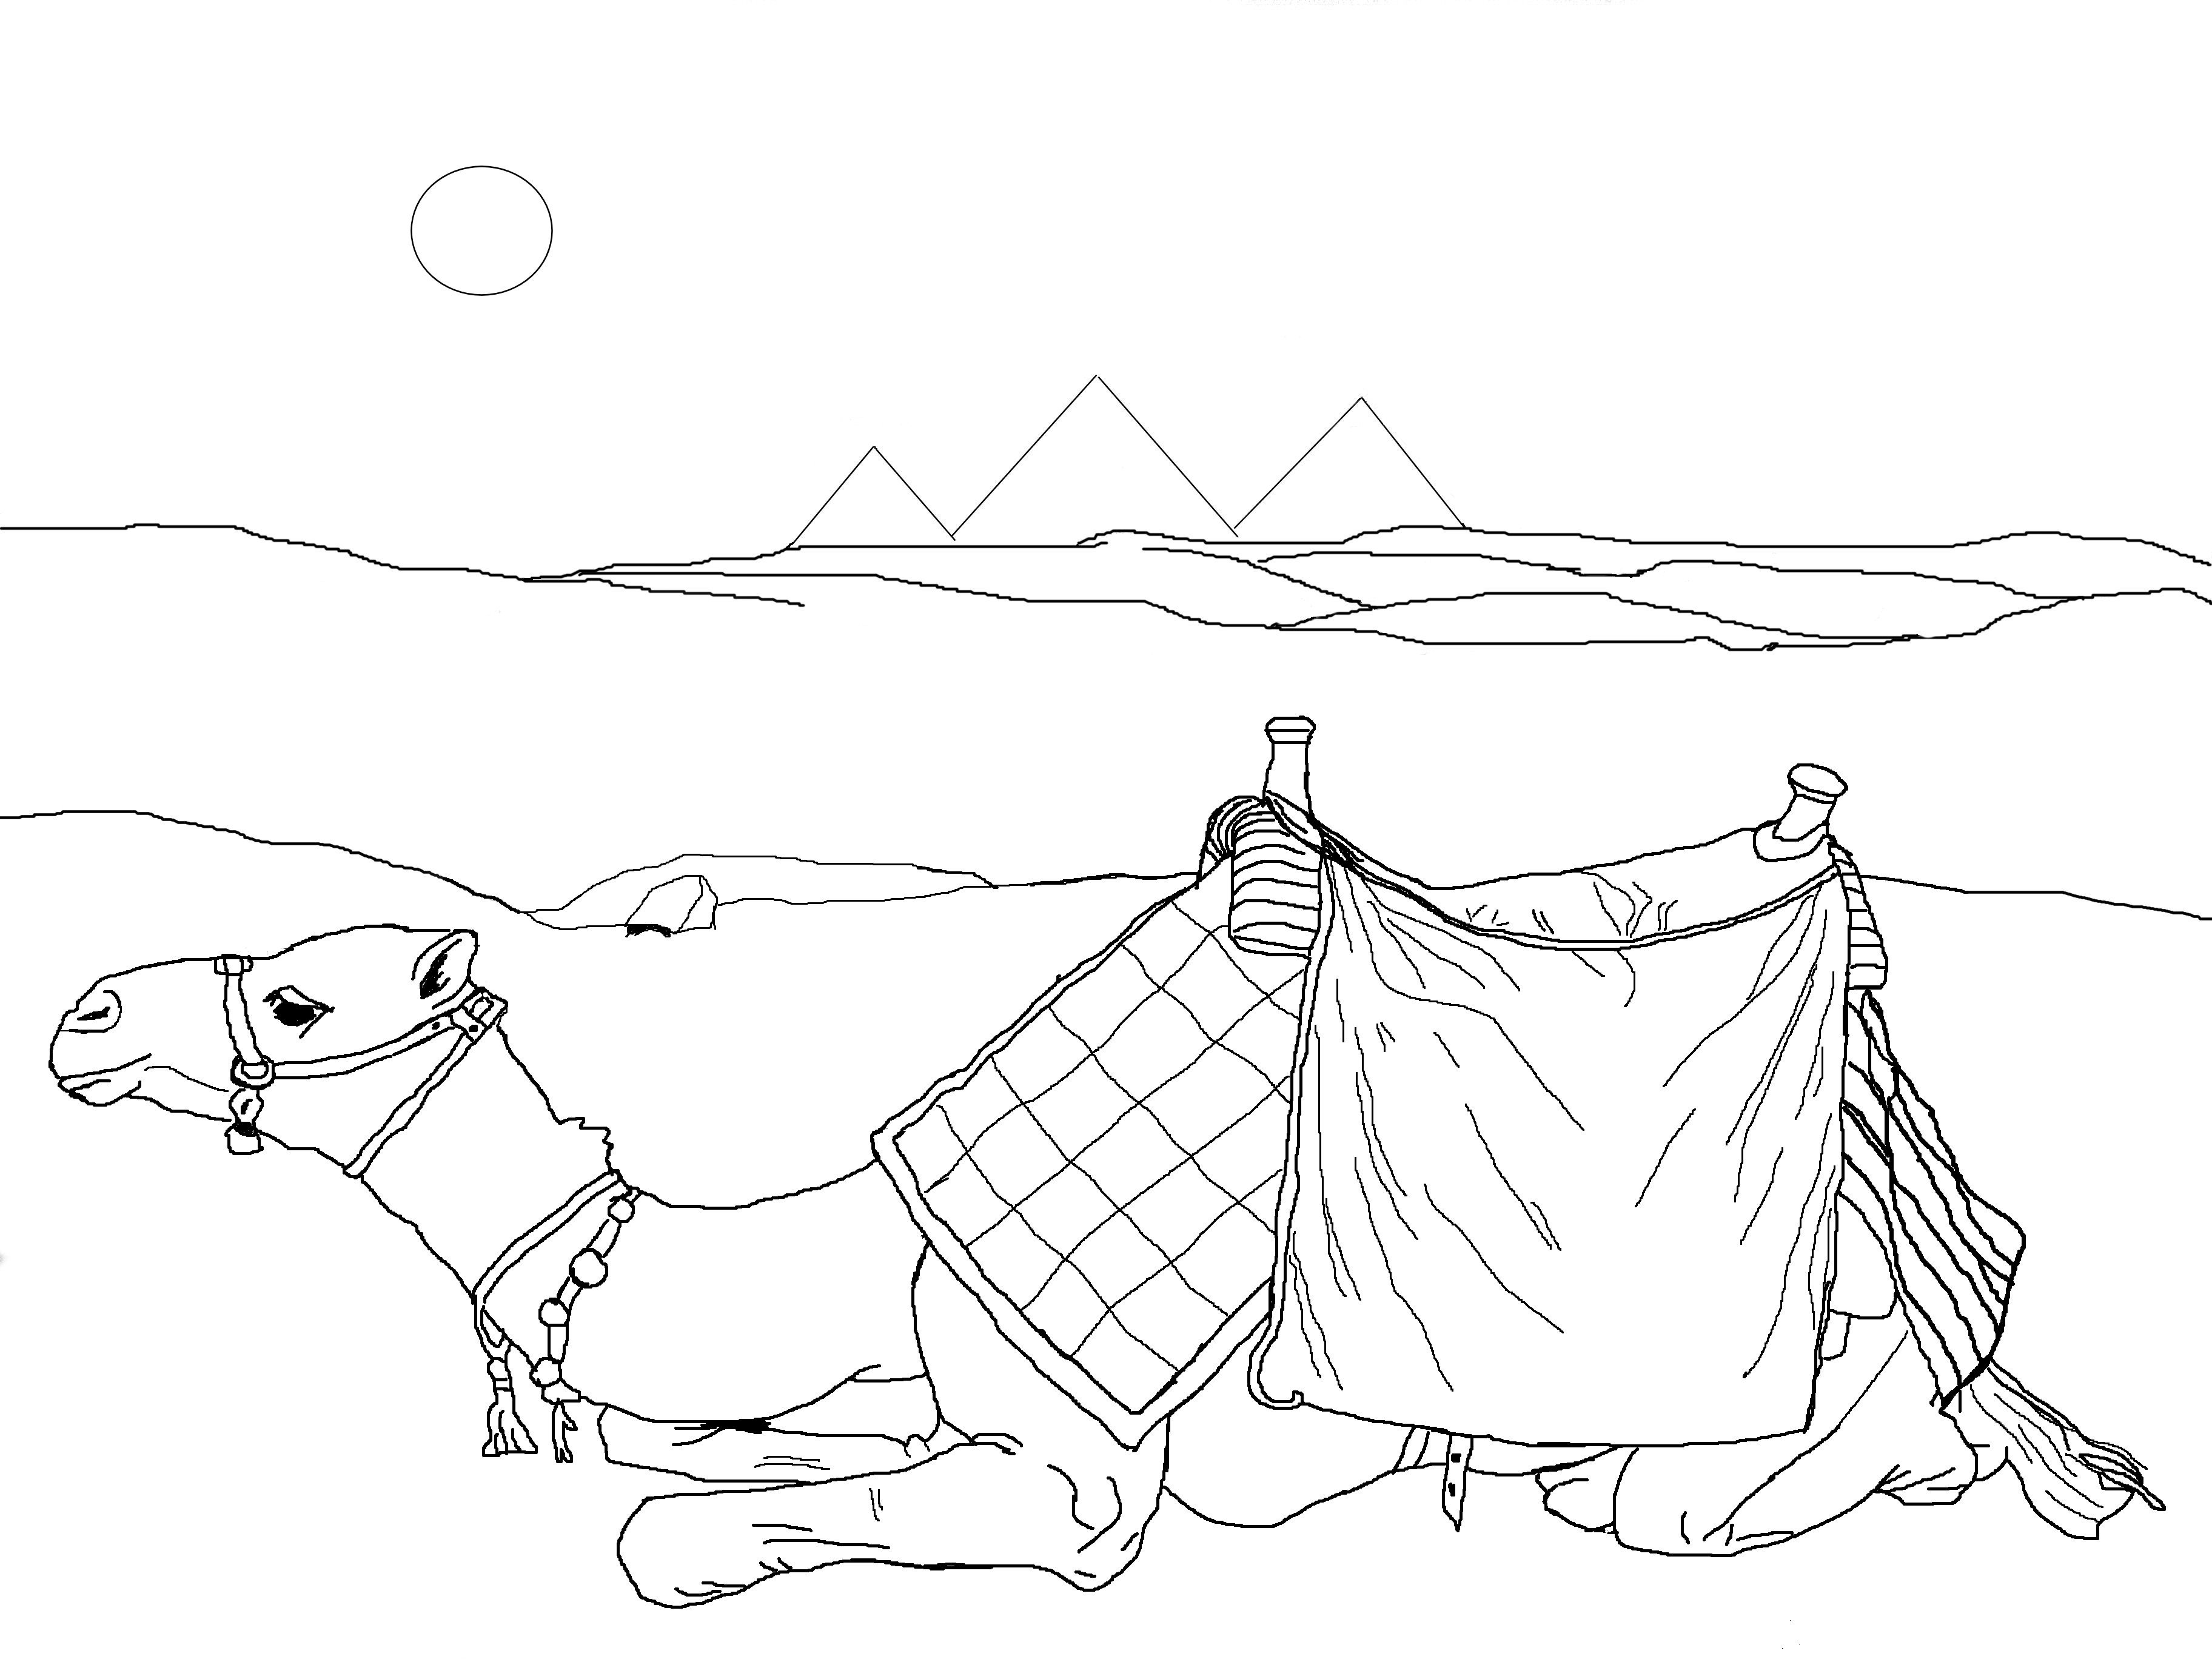 camels coloring pages free camel coloring pages coloring camels pages